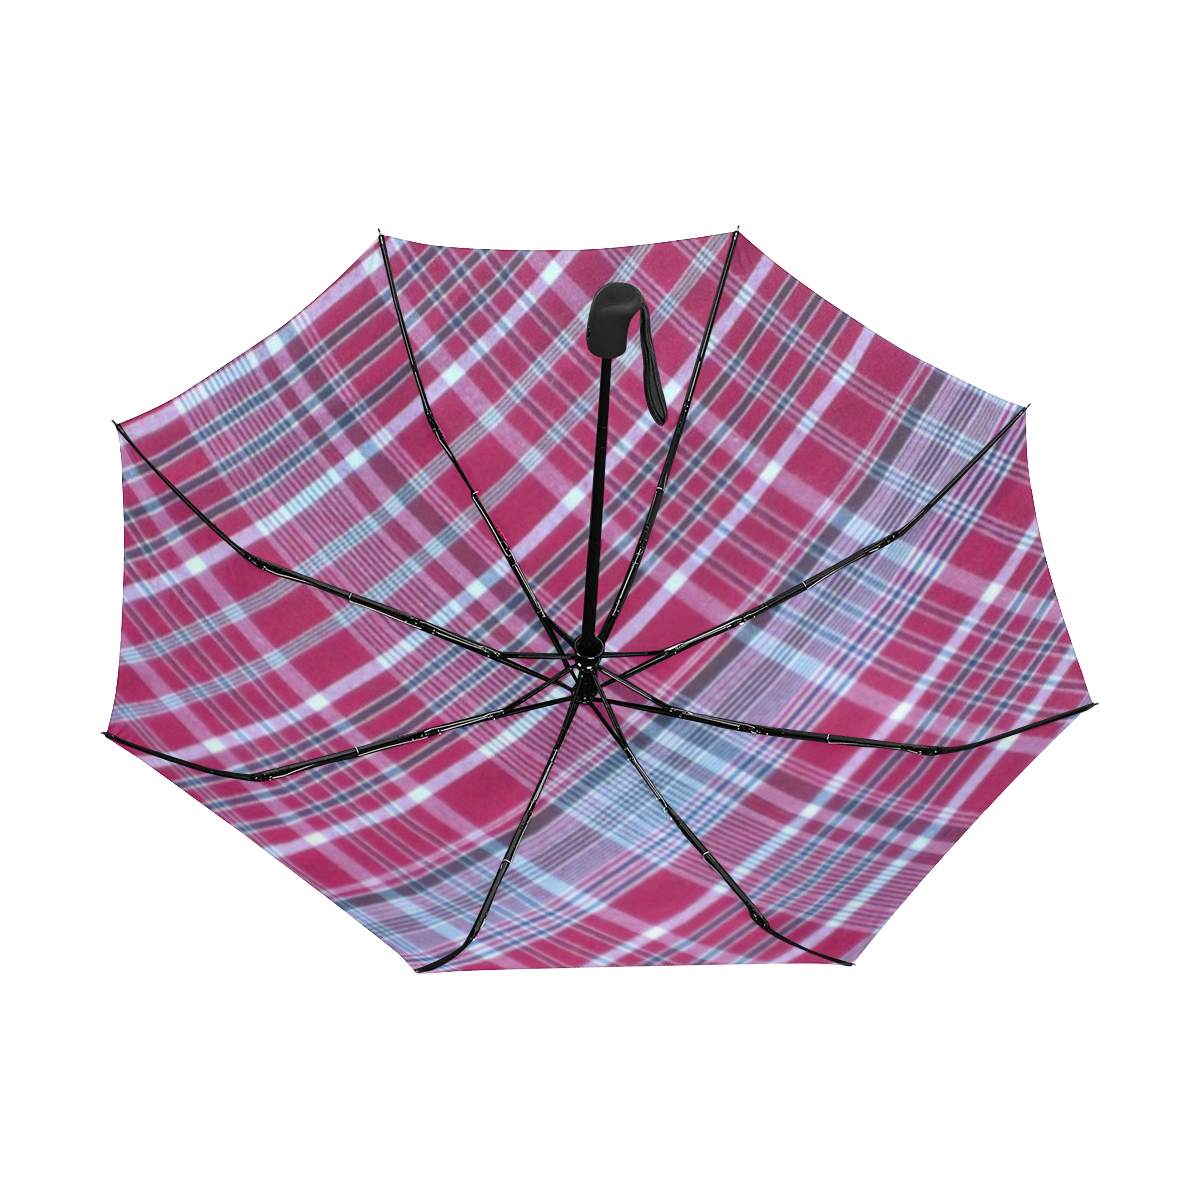 MONTEGO Umbrella